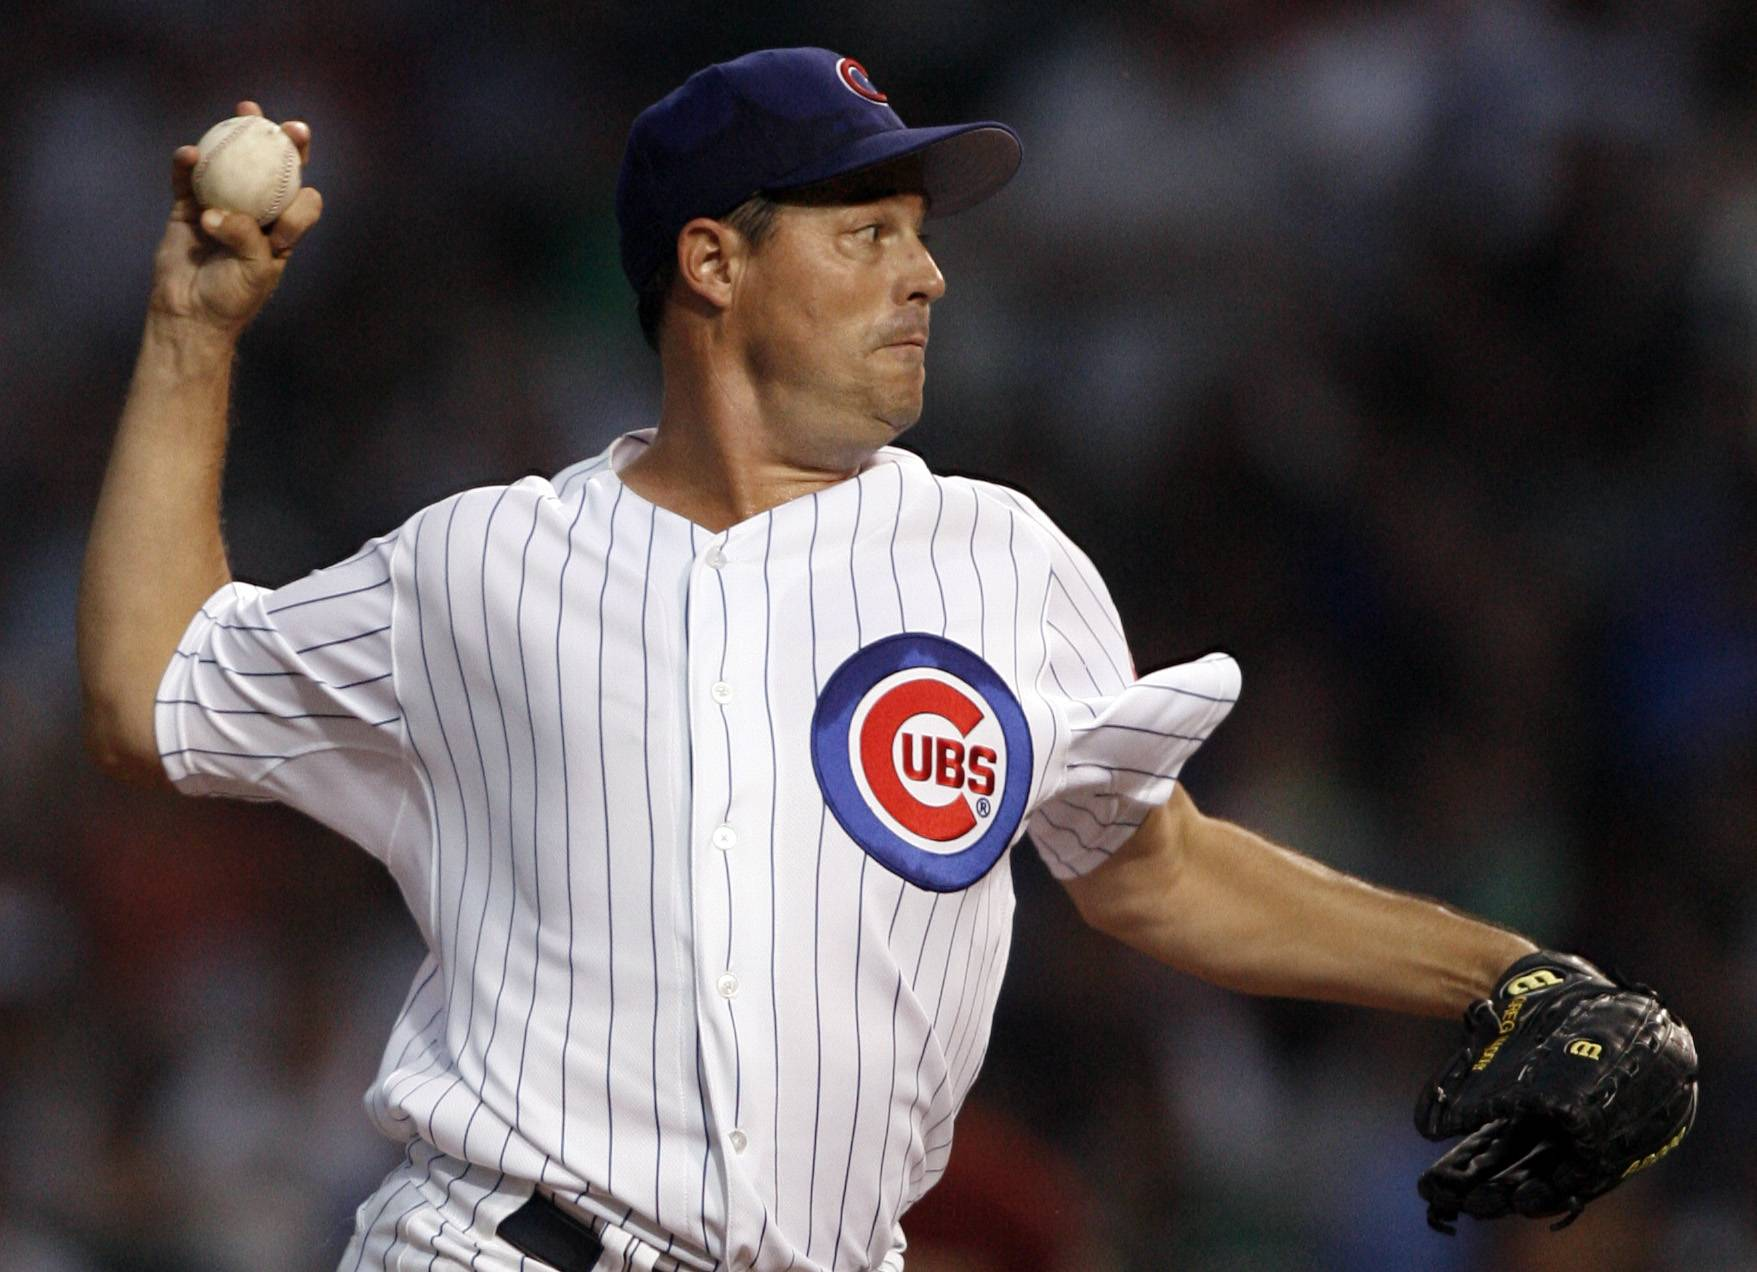 Greg Maddux had thrown 1,442 innings by the time he was 26. Who knew he'd go through a 23-year career in the big leagues and only go on the DL once?